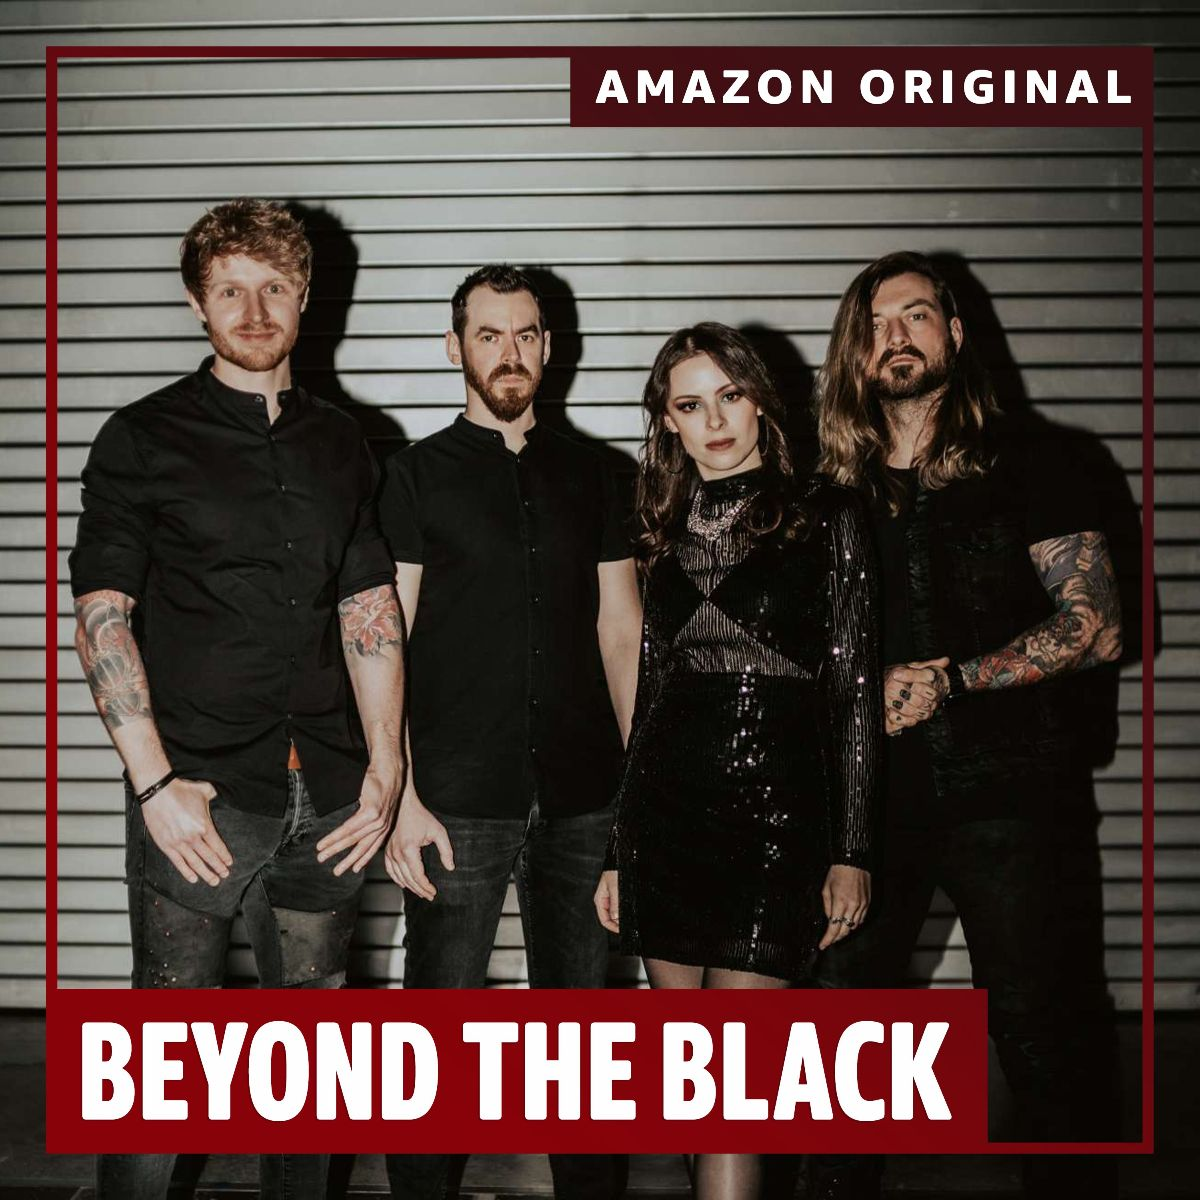 """Beyond The Black releases cover of Iron Maiden's """"Wasted Years"""" as an Amazon Original"""